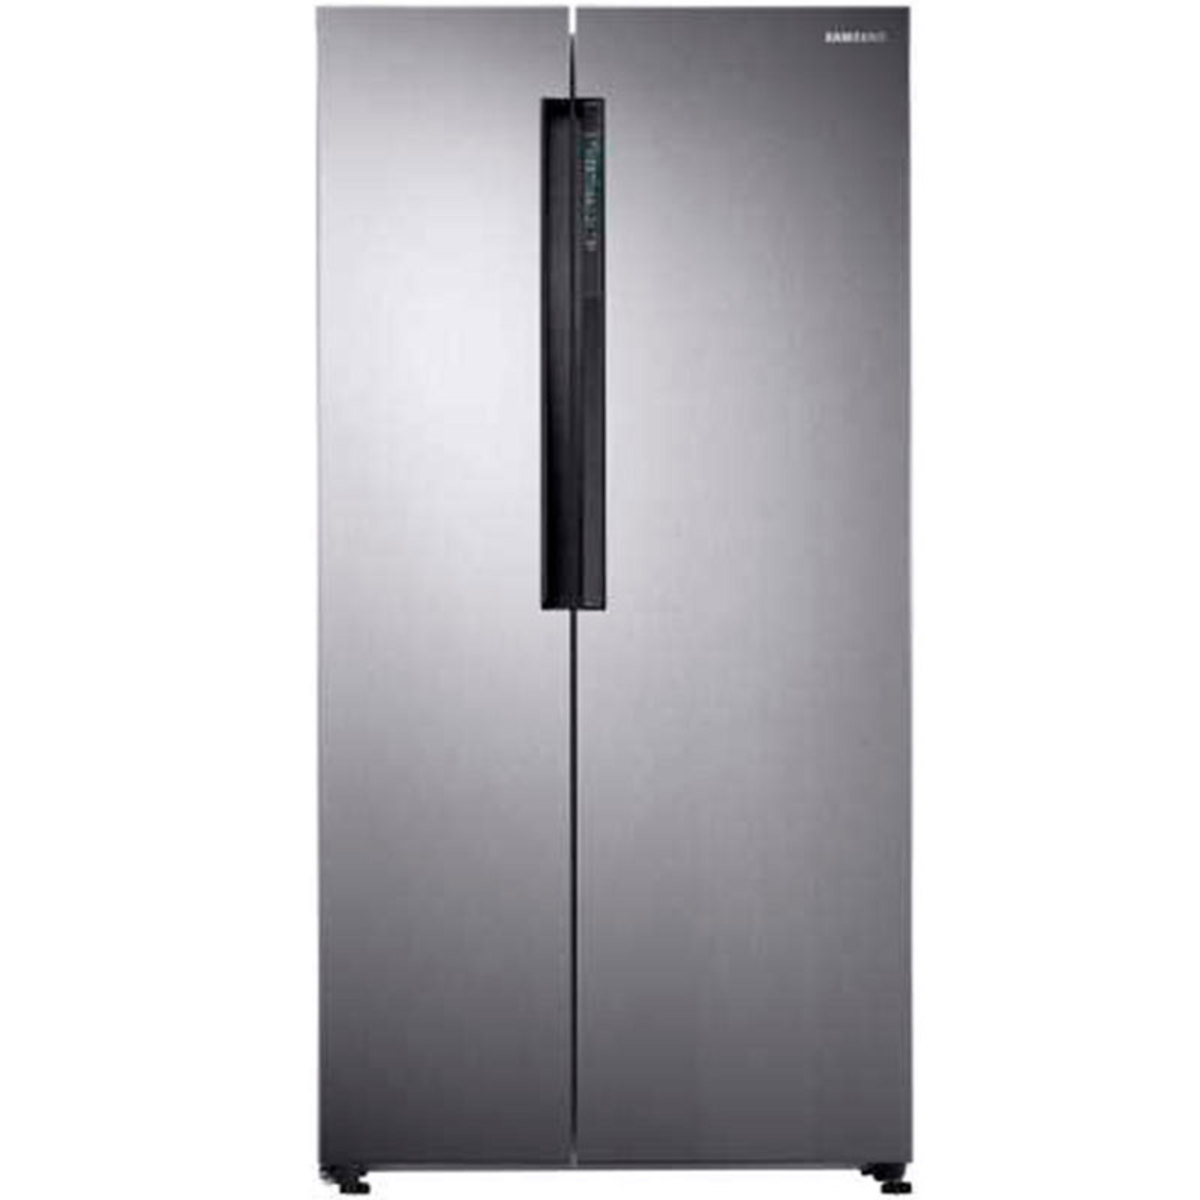 RS62K6007S8/SH 620L Side by Side Refrigerator  Hong Kong Warranty Genuine Products